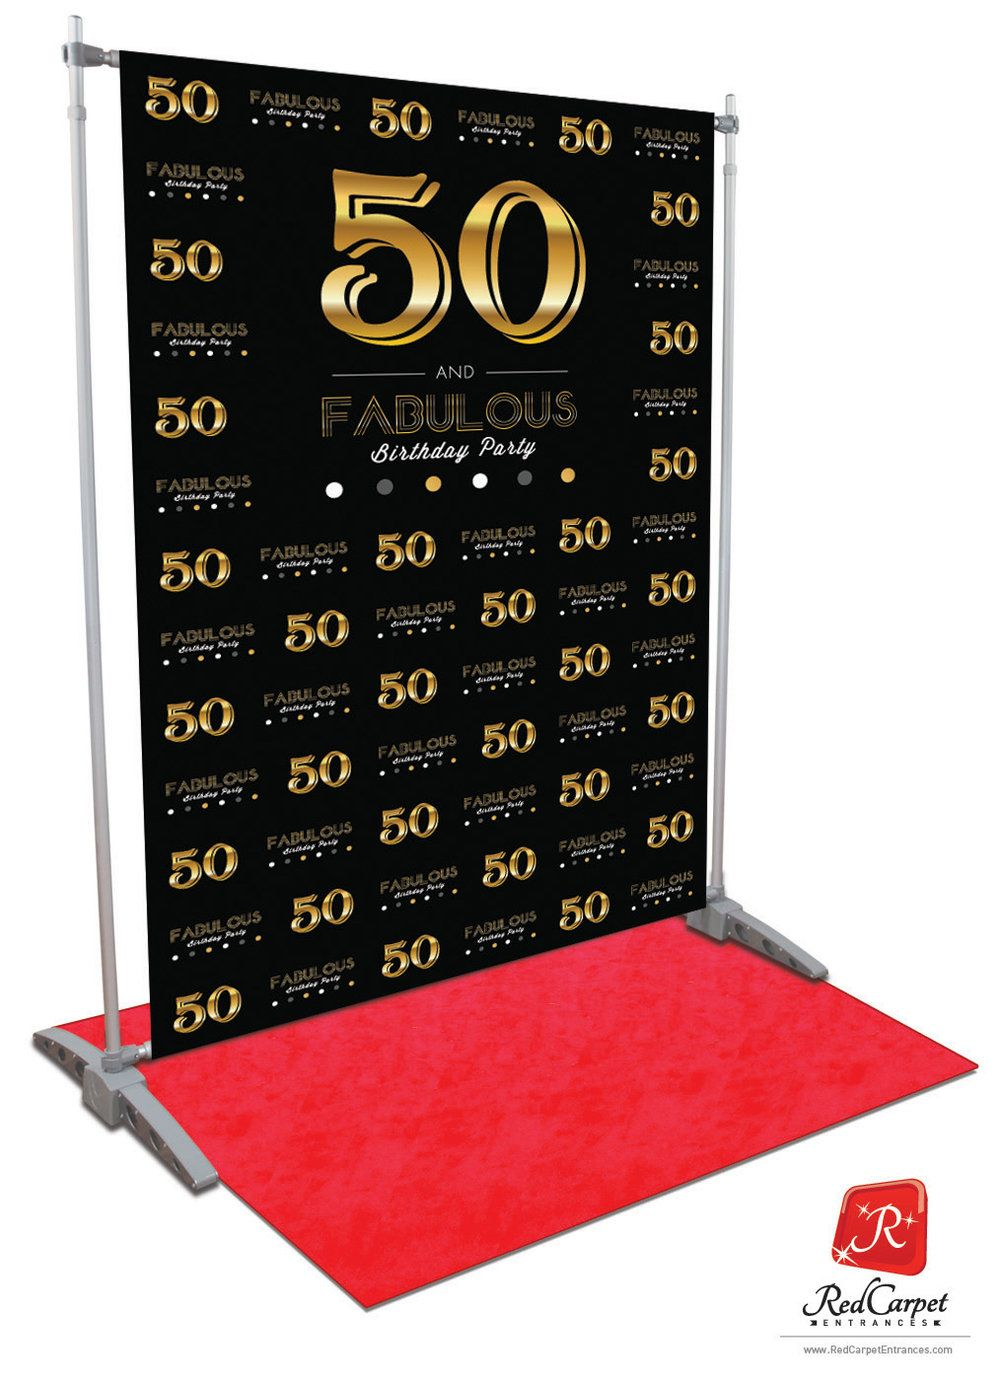 50 And Fabulous Birthday Backdrop Black 5x8 In 2019